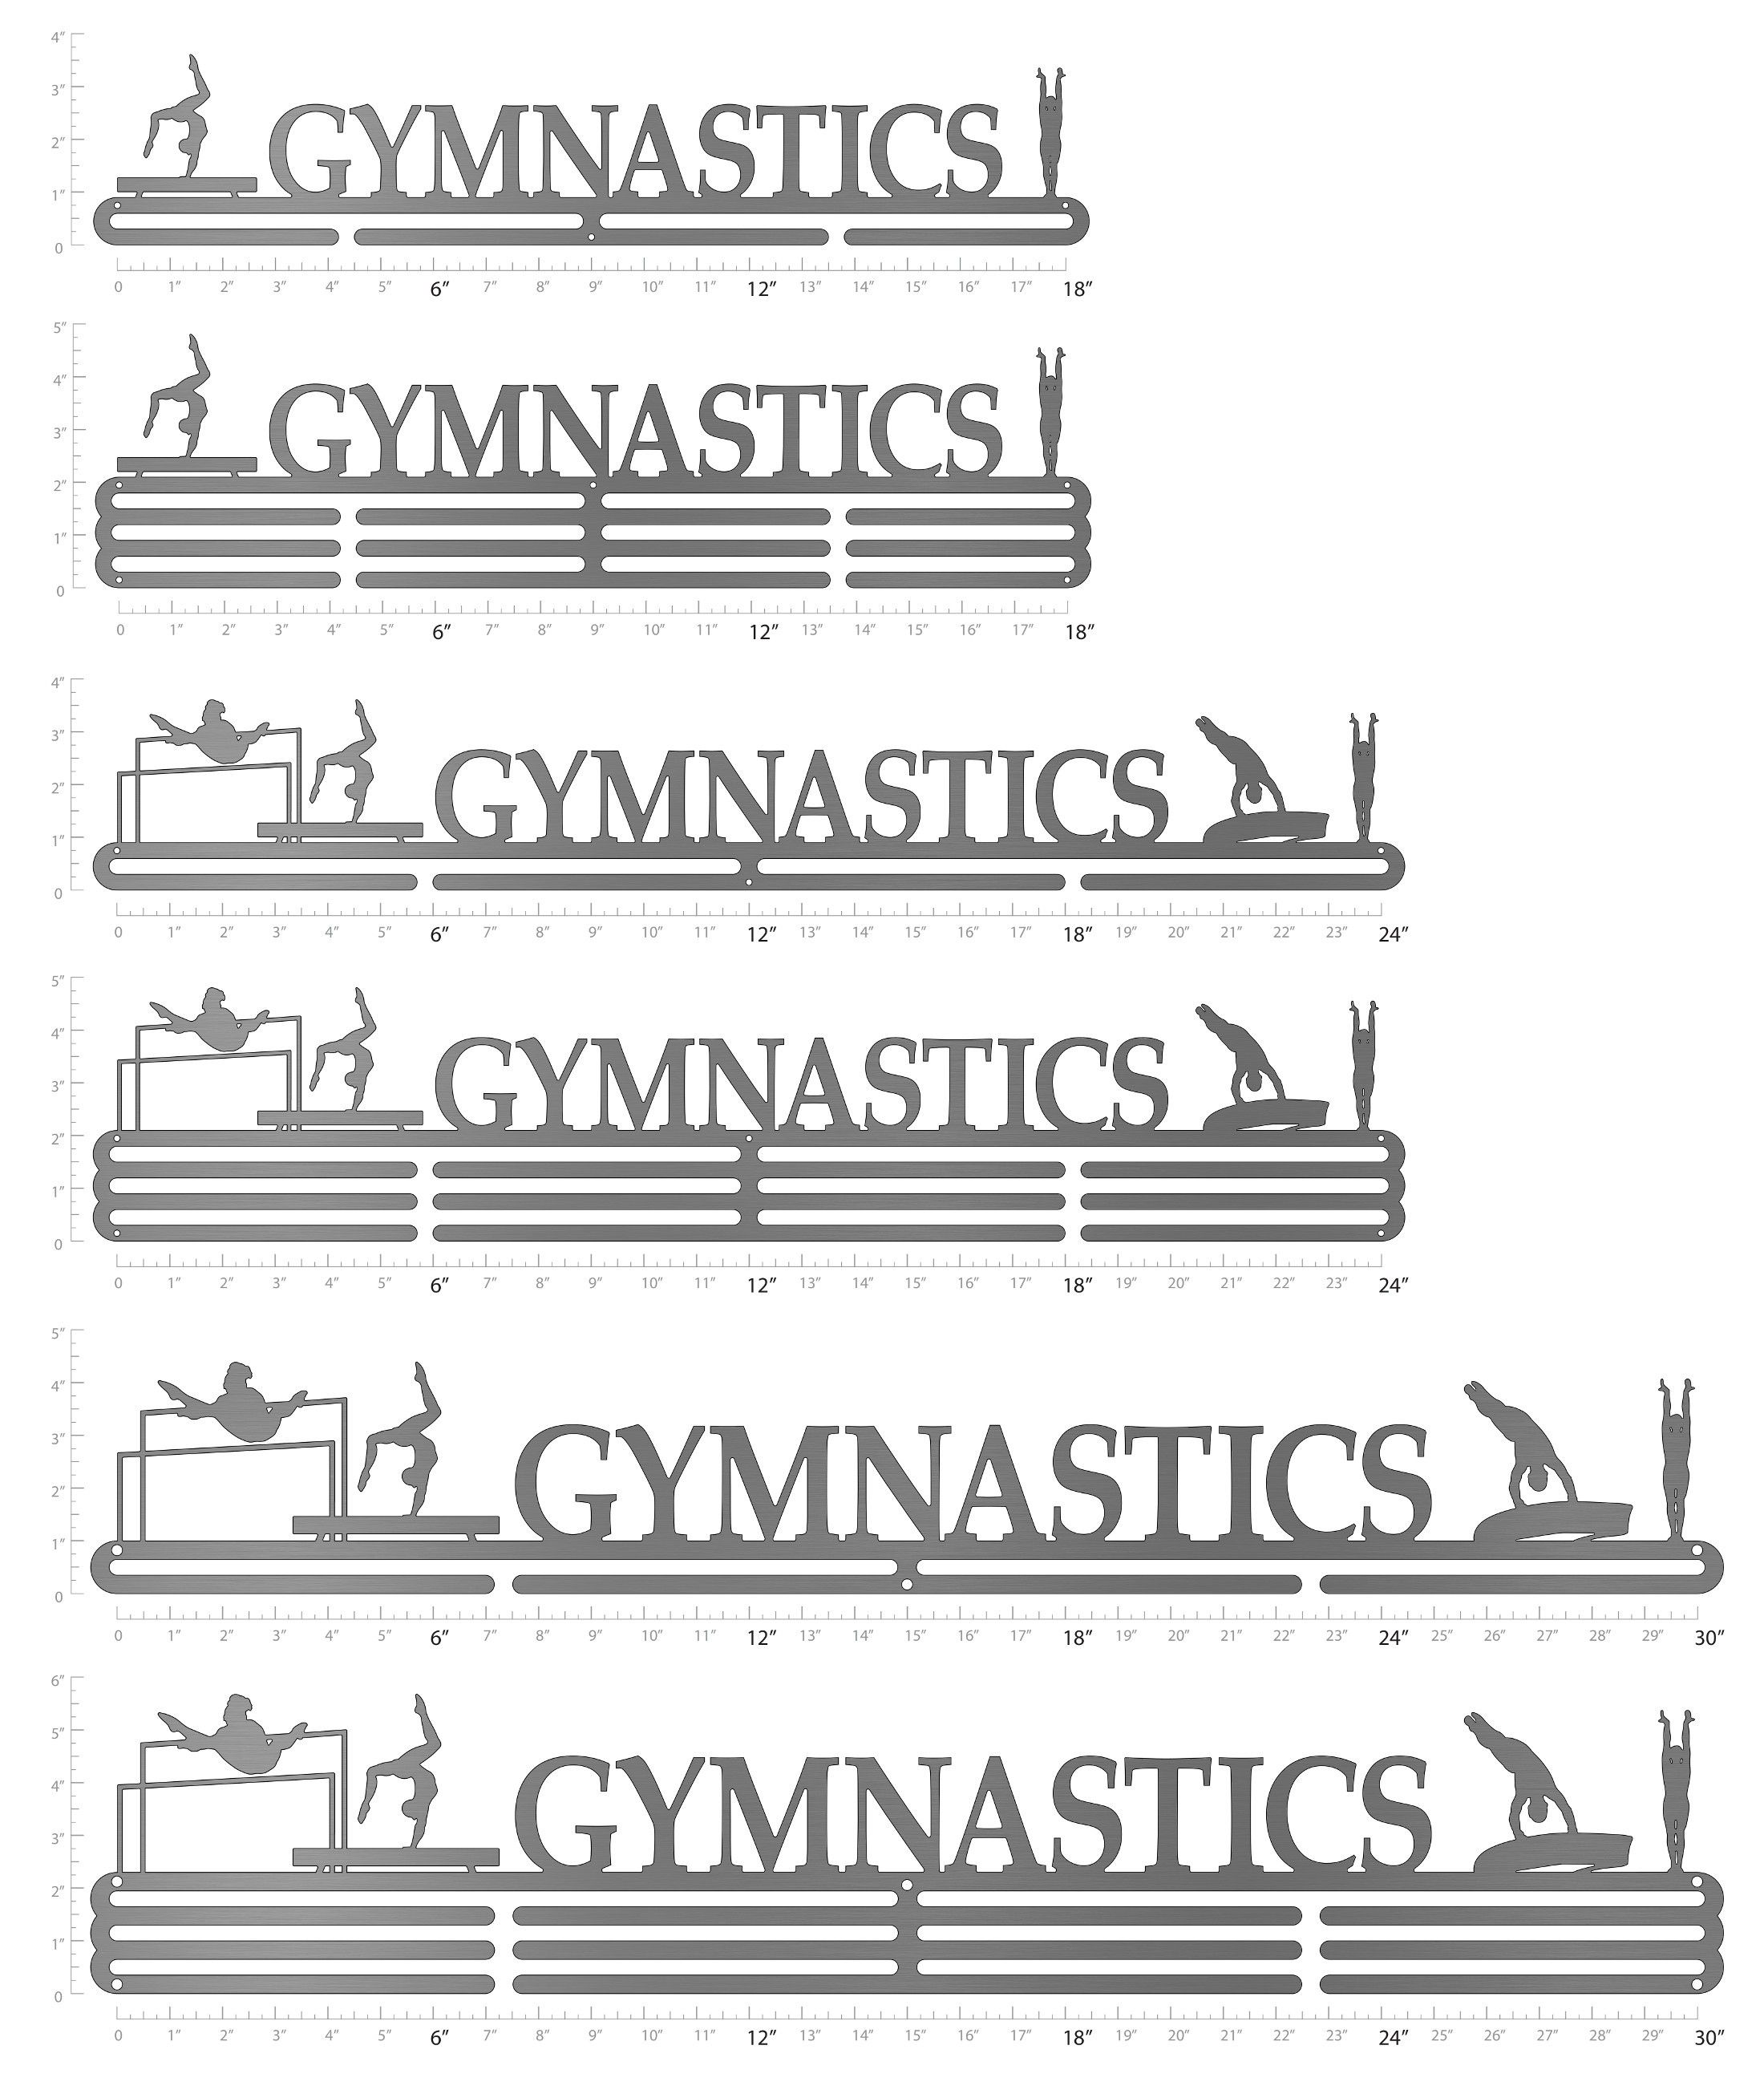 Gymnastics clipart gymnastics medal. Female pinterest